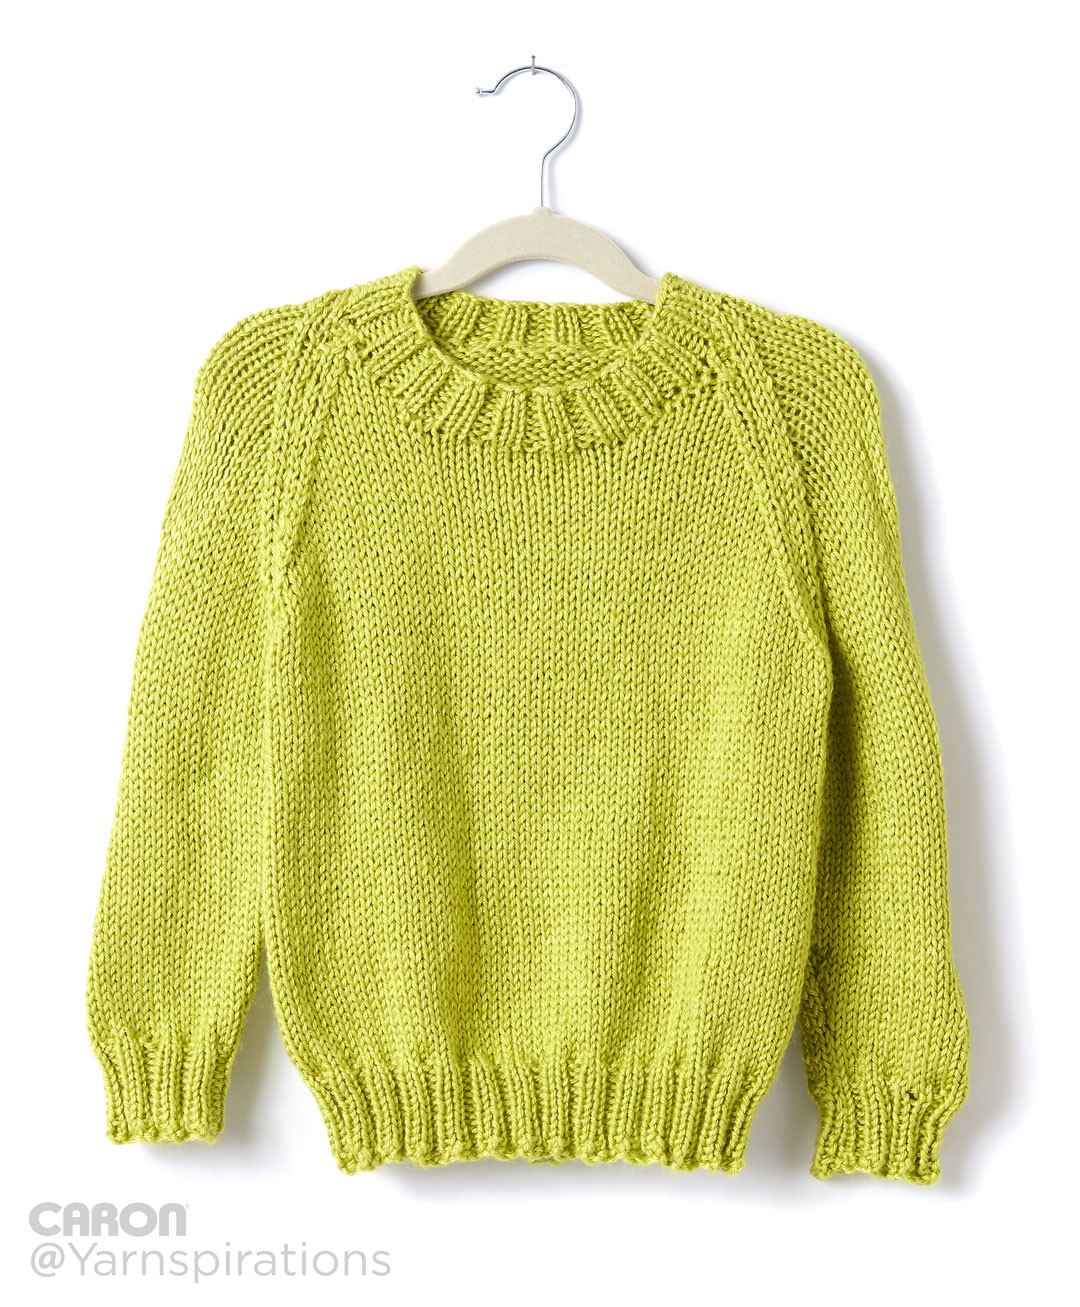 Caron Childs Knit Crew Neck Pullover, Knit Pattern Yarnspirations